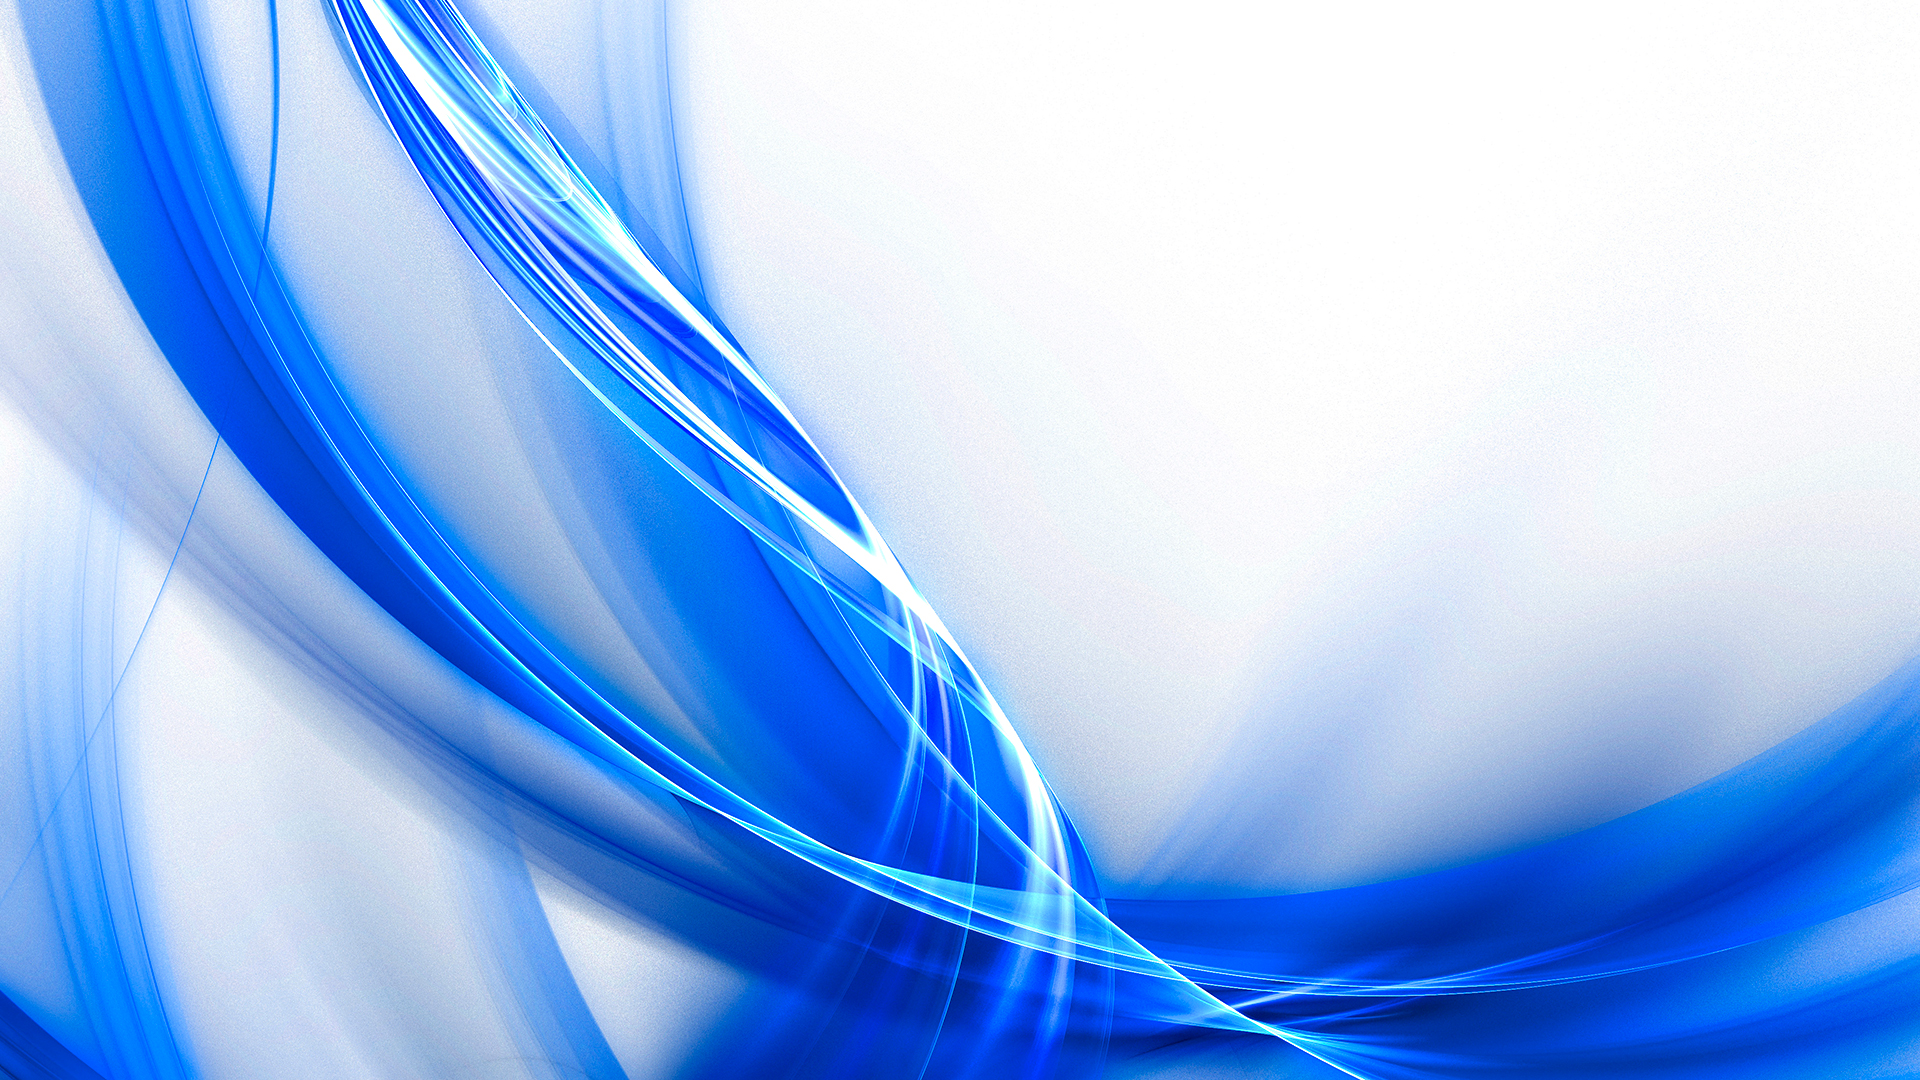 Blue White Computer Wallpapers Desktop Backgrounds 1920x1080 ID 1920x1080